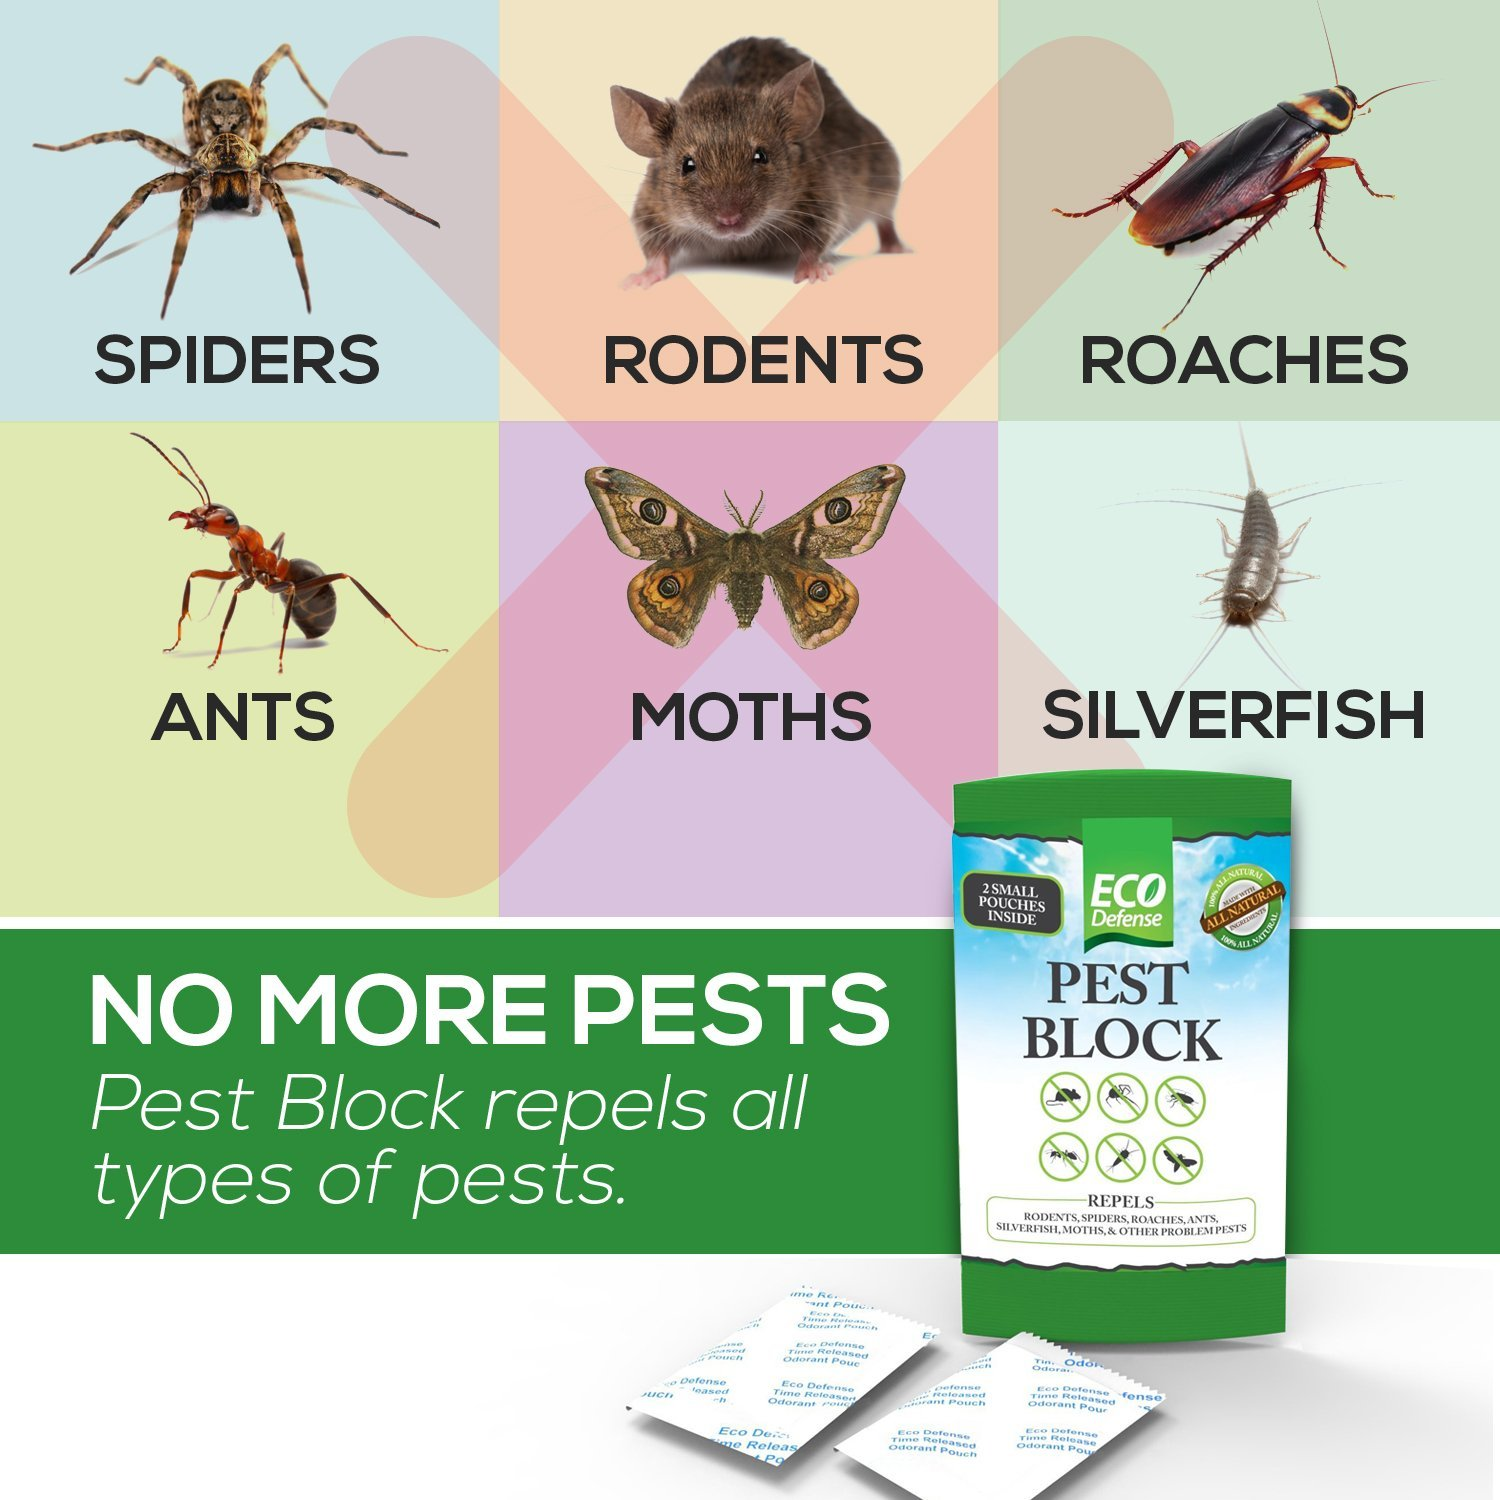 Eco Defense Pest Control Pouches - All Natural - Repels Rodents, Spiders, Roaches, Ants, Moths & Other Pests - 12 Pack - Best Mouse Trap Alternative by Eco Defense (Image #4)